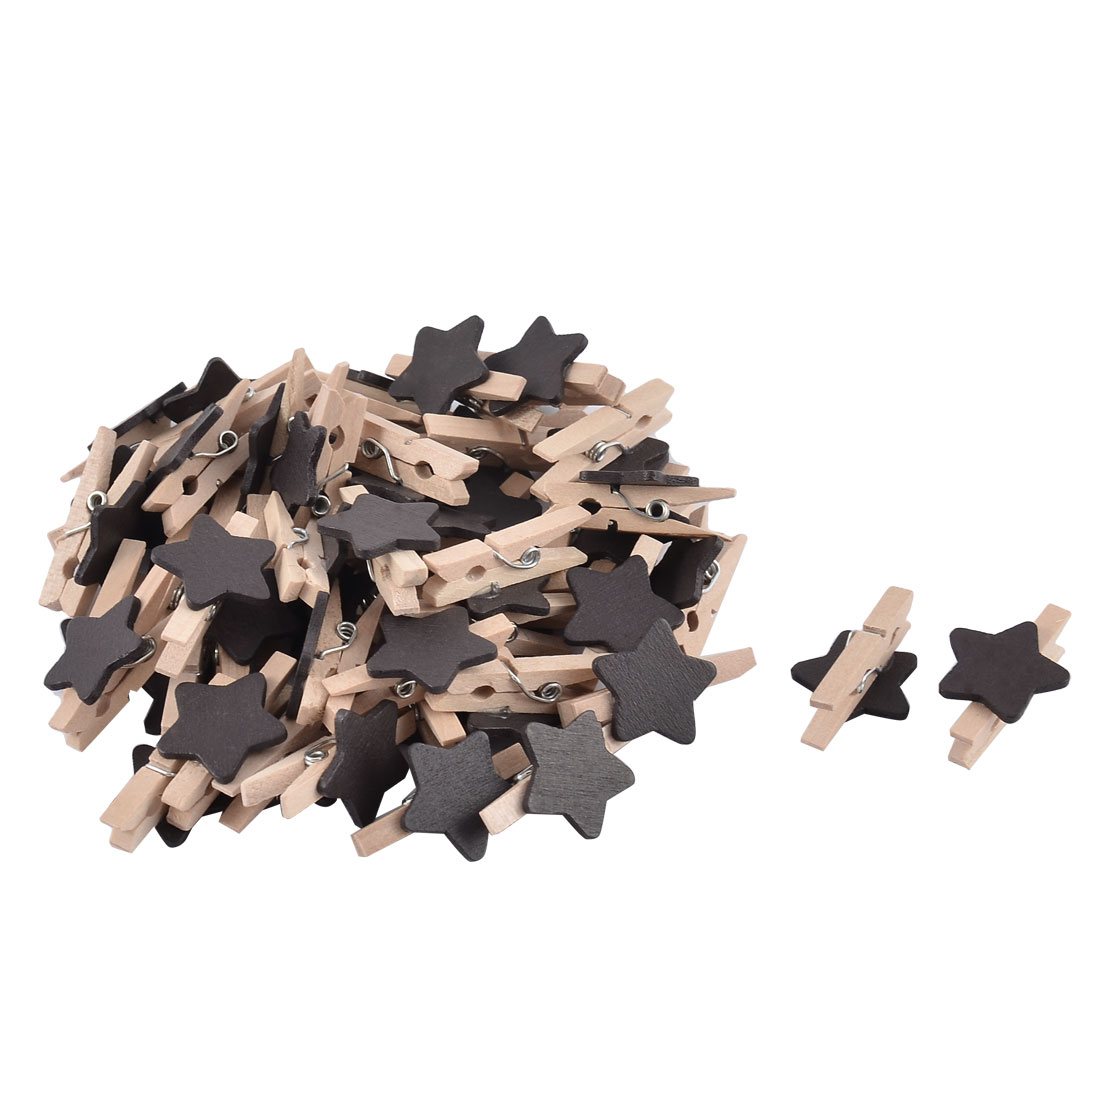 Unique Bargains Album Card Photo Spring Pegs Star shape Crafts Mini Wooden Clip Black 50pcs